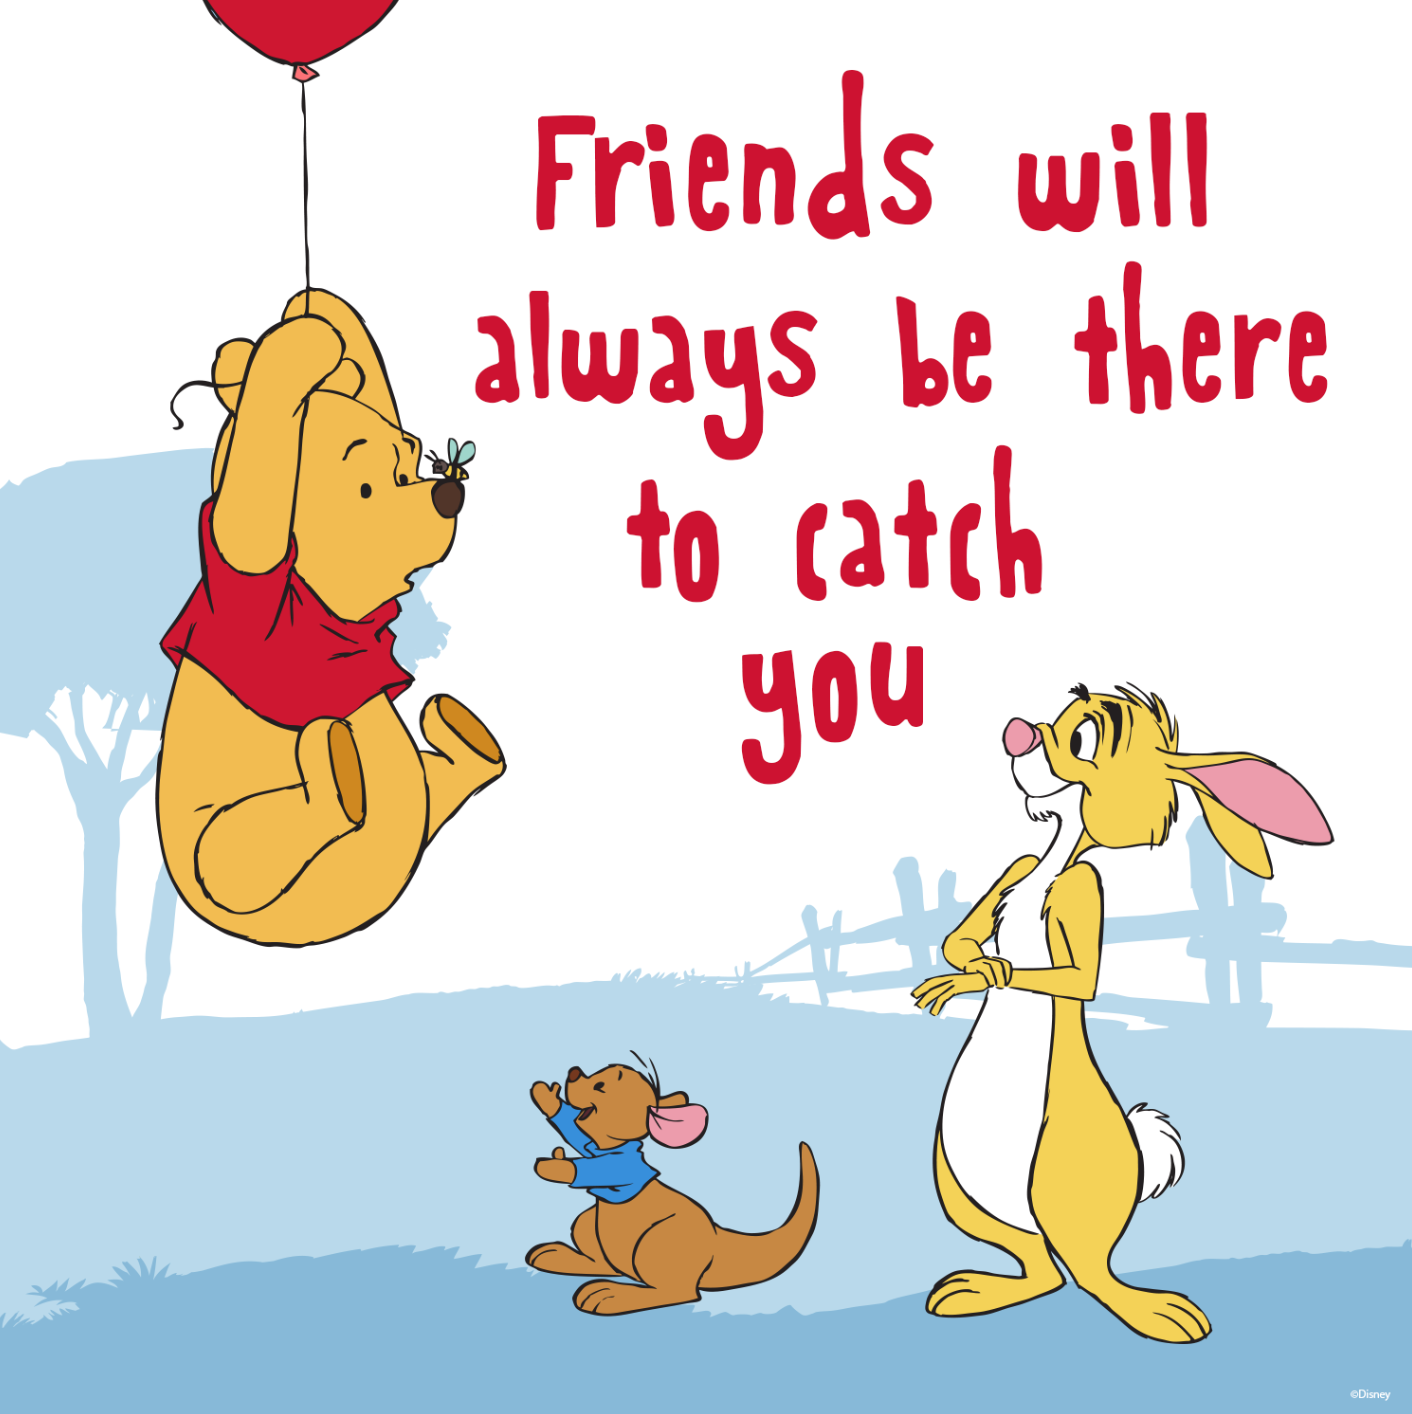 Pooh Quotes About Friendship Winnie The Pooh Art To Brighten Up Your Day  Bears Friendship